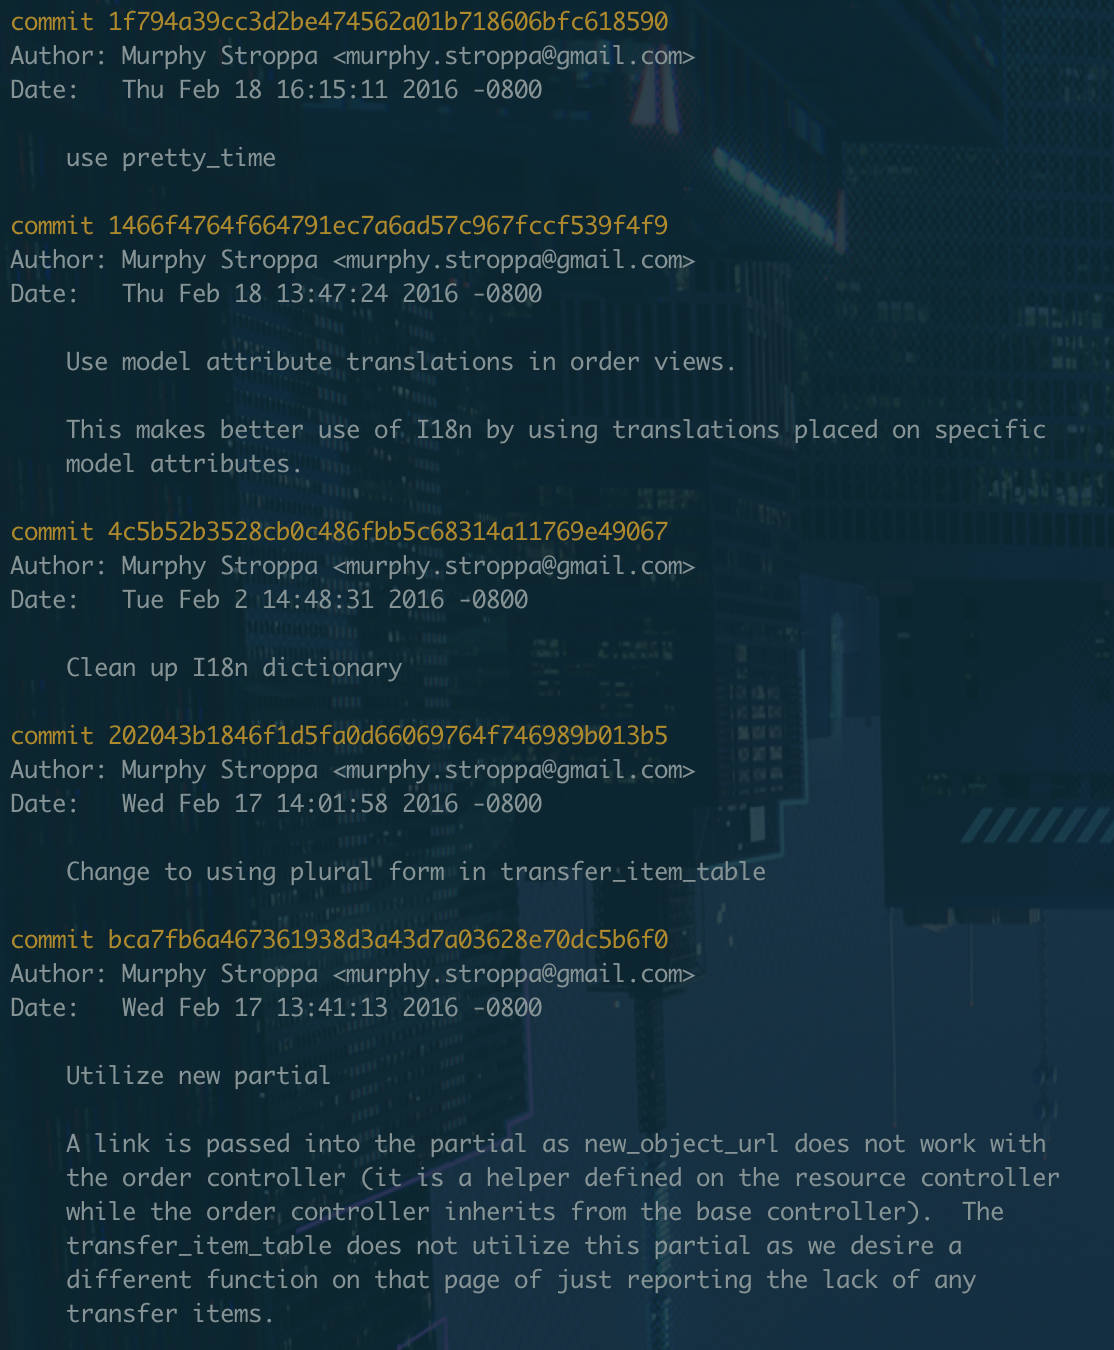 A screenshot of the Solidus git log between Febrary 10th, 2016 and February 19th, 2016